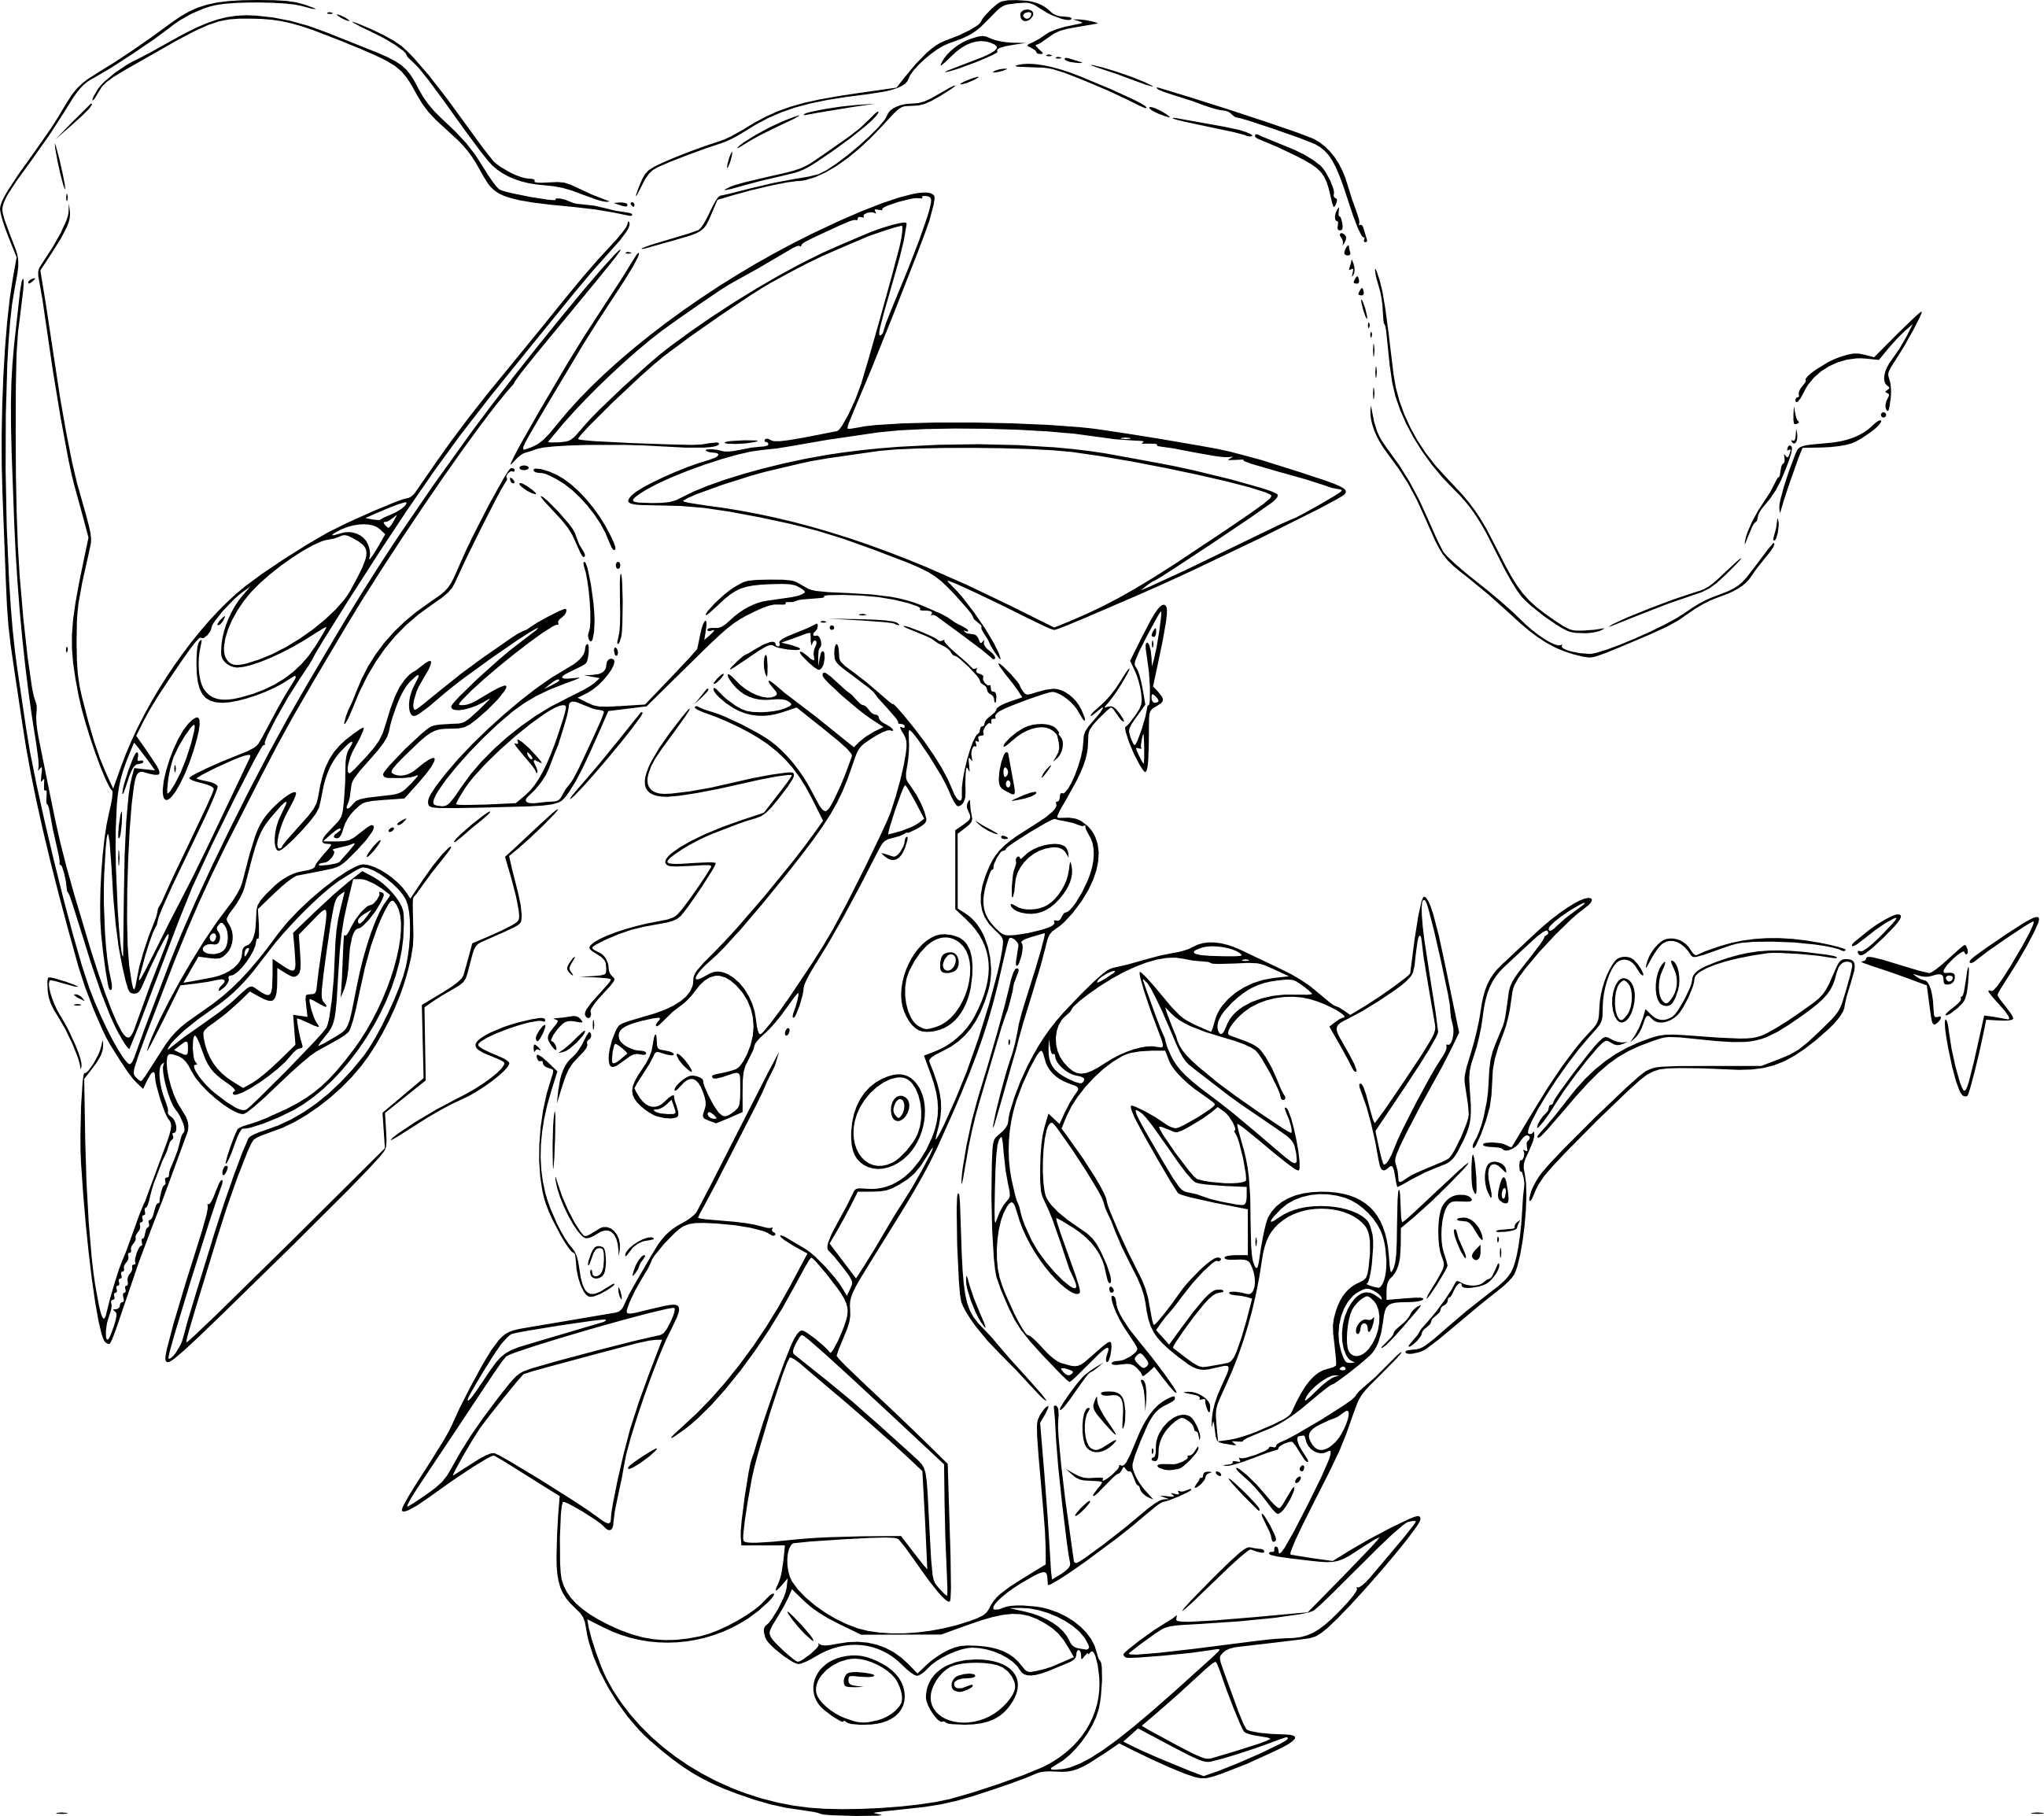 Coloriage m ga rayquaza pokemon imprimer - Coloriage carte pokemon ...